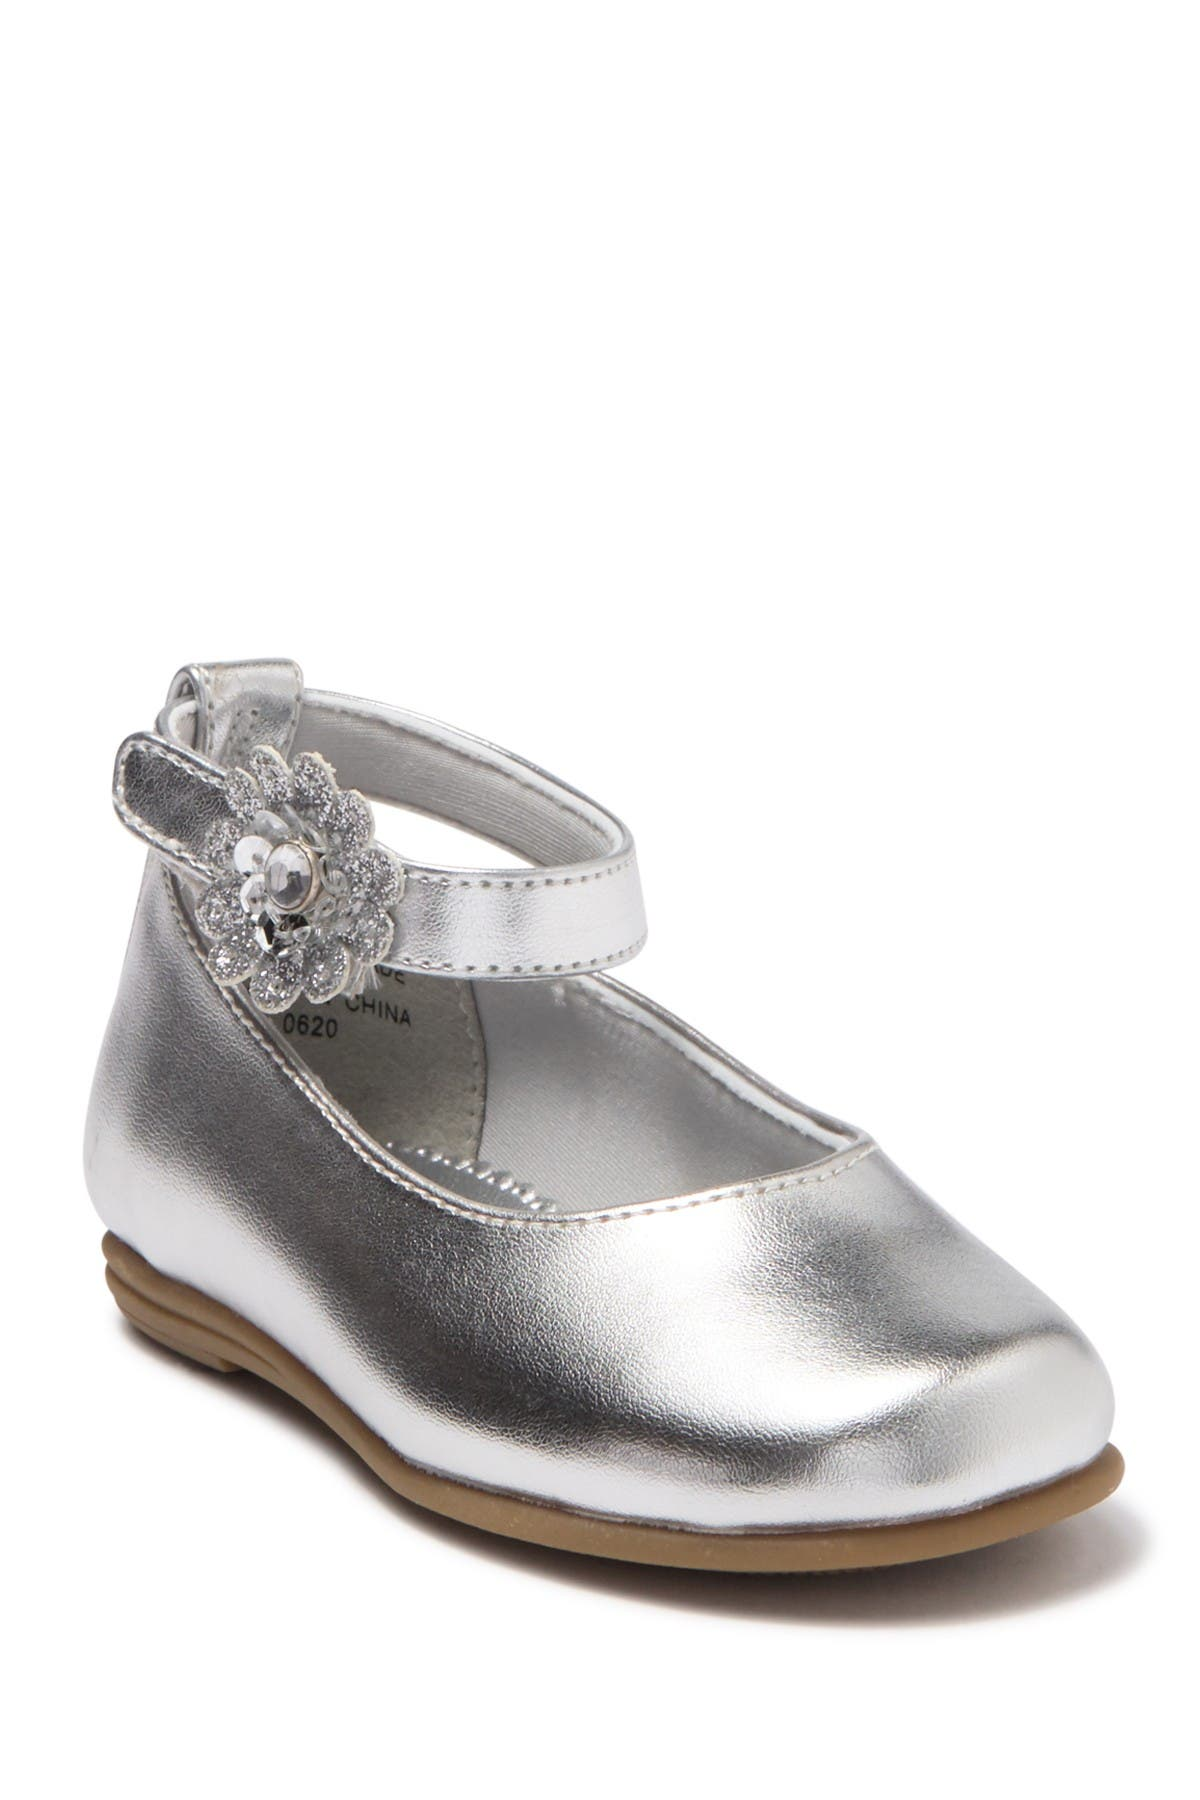 Image of Valencia Imports Lil Sheryl Ankle Strap Flat